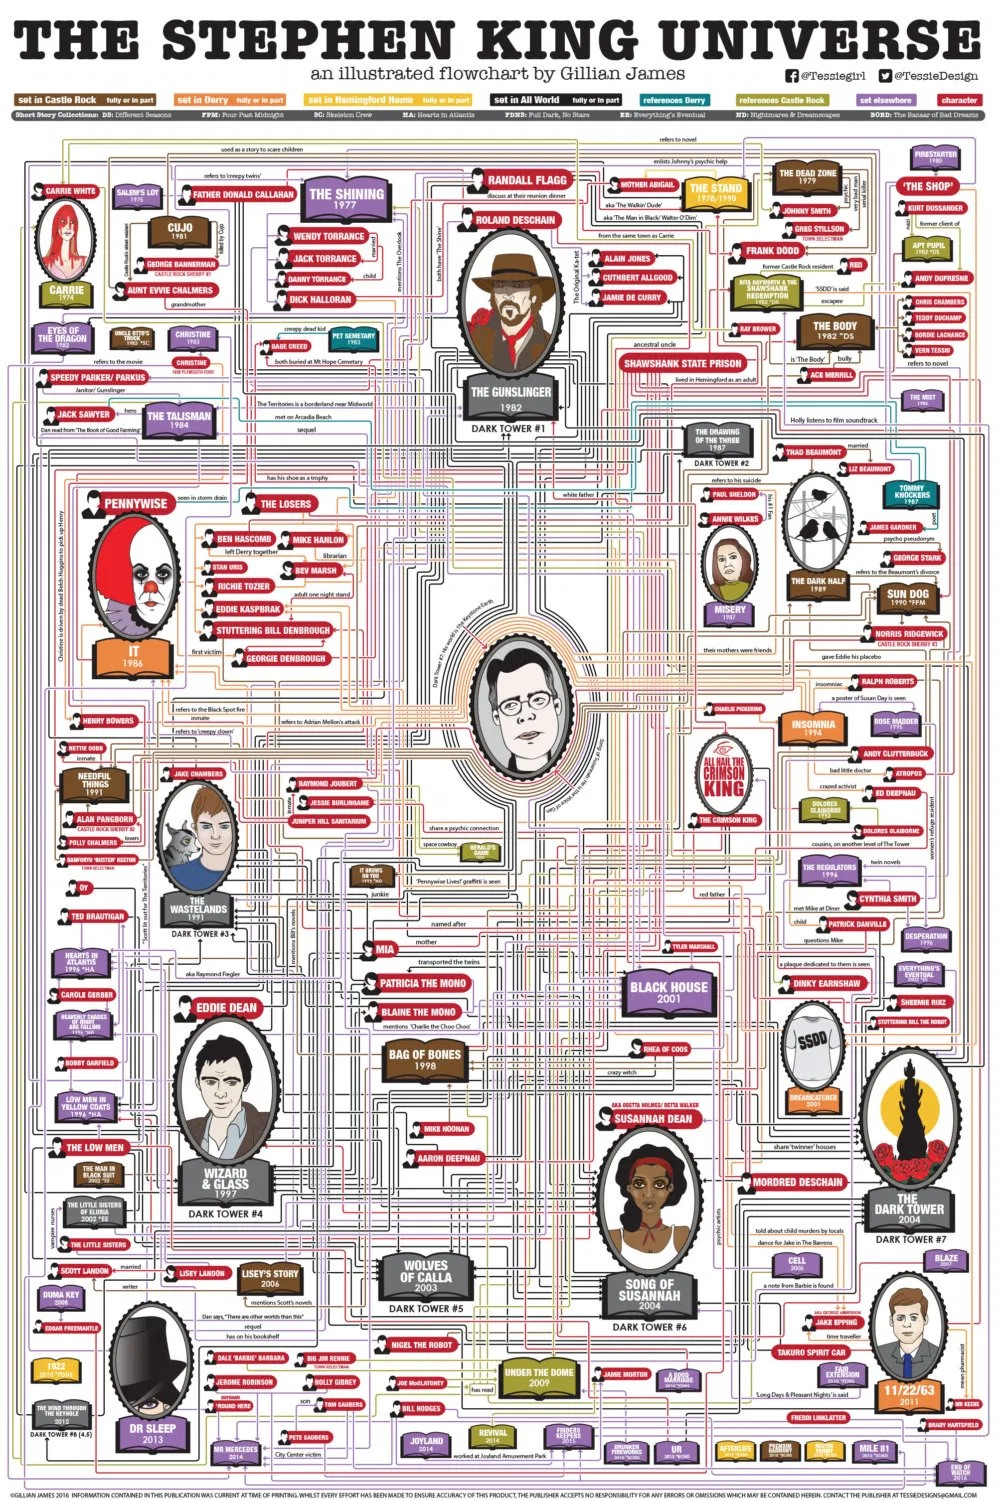 Best Stephen King Movies - All Stephen King Movies